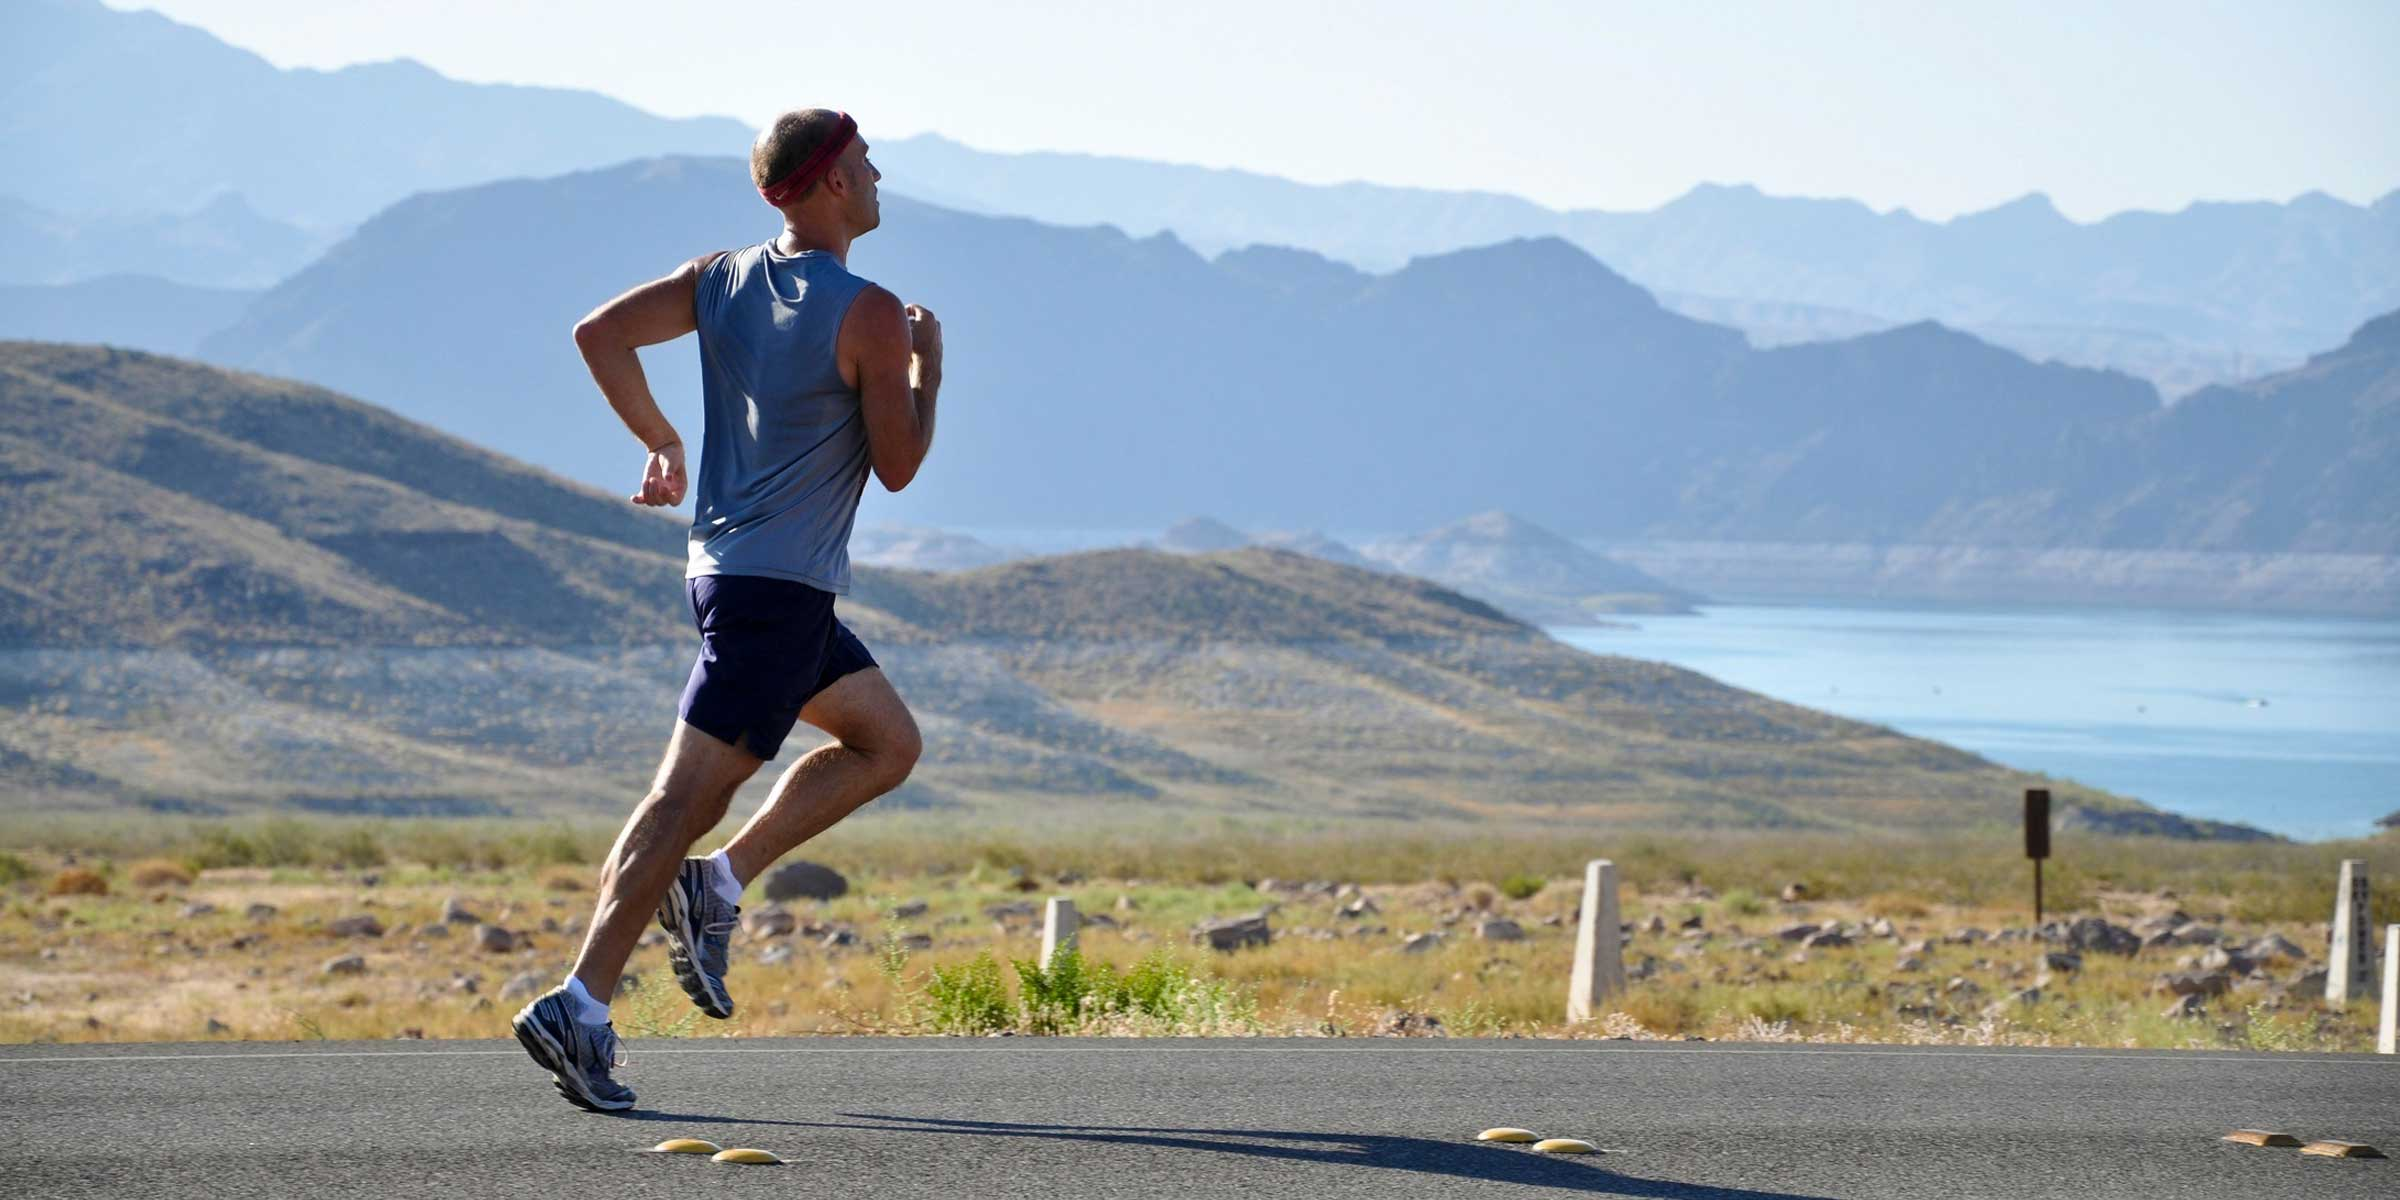 A runner heads out on the run, looking to finish his first triathlon on a sunny day in Southern BC.